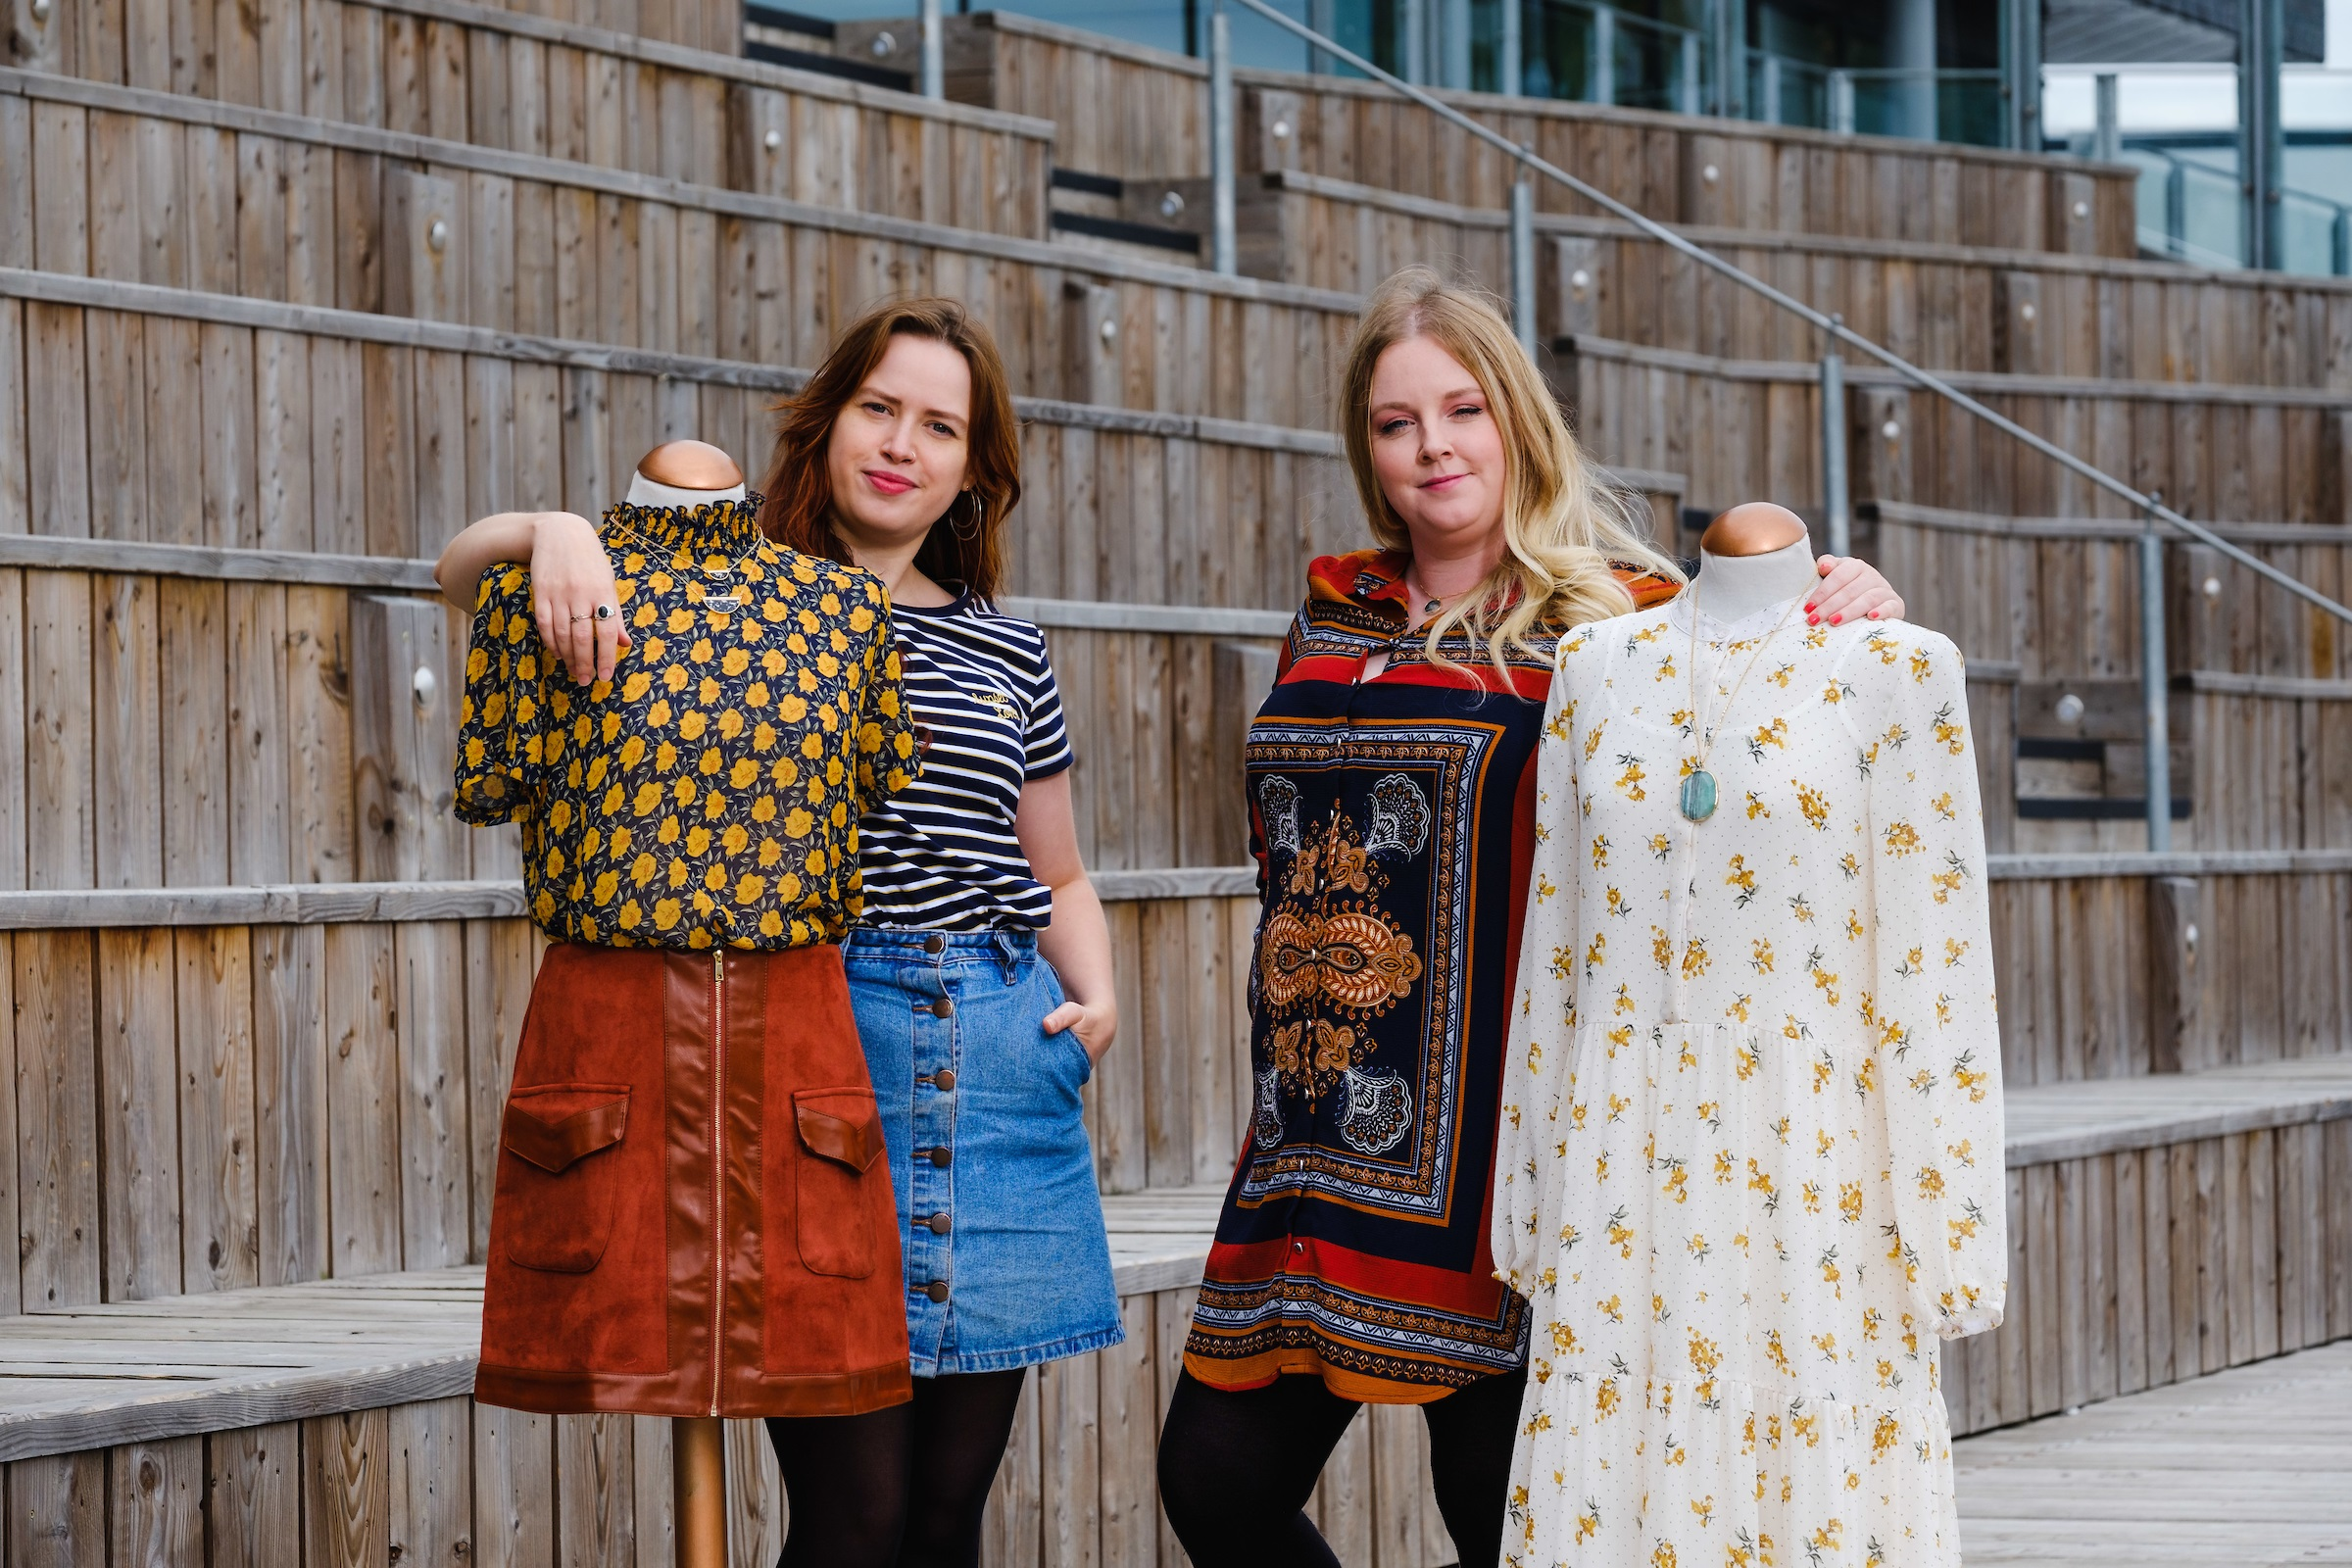 Owner Nicola Gibbons, right, and Manager Anna Carter pictured at the Stage @TheDock venue in the Fruit Market with examples of the fashions that will be stocked when Tessies opens in the thriving waterside quarter.